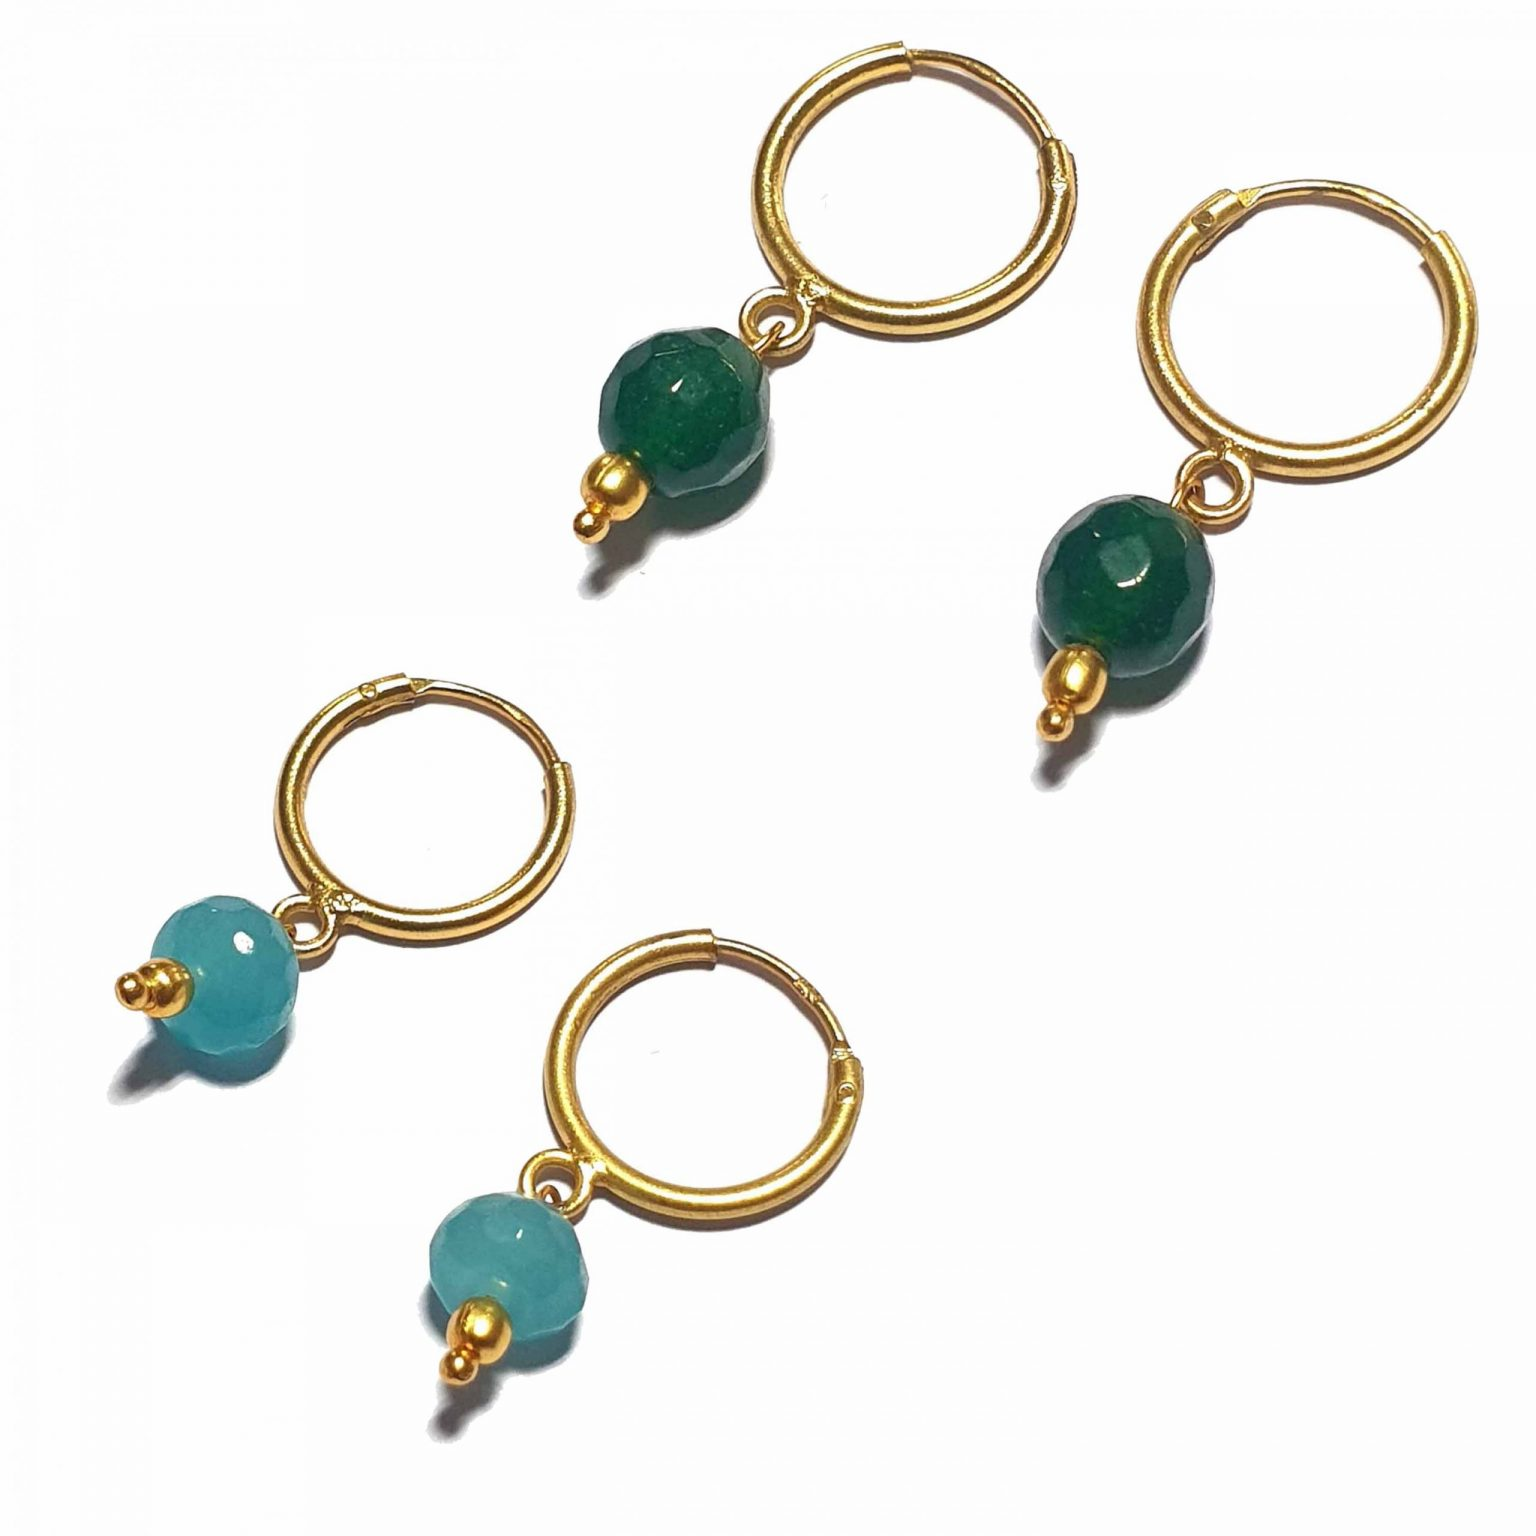 Silver Bali Set of 2 Combo with Blue Chalcedony and Dark Green Chalcedony Gold Polished Bali in Pure Silver 925 | Earrings for Women